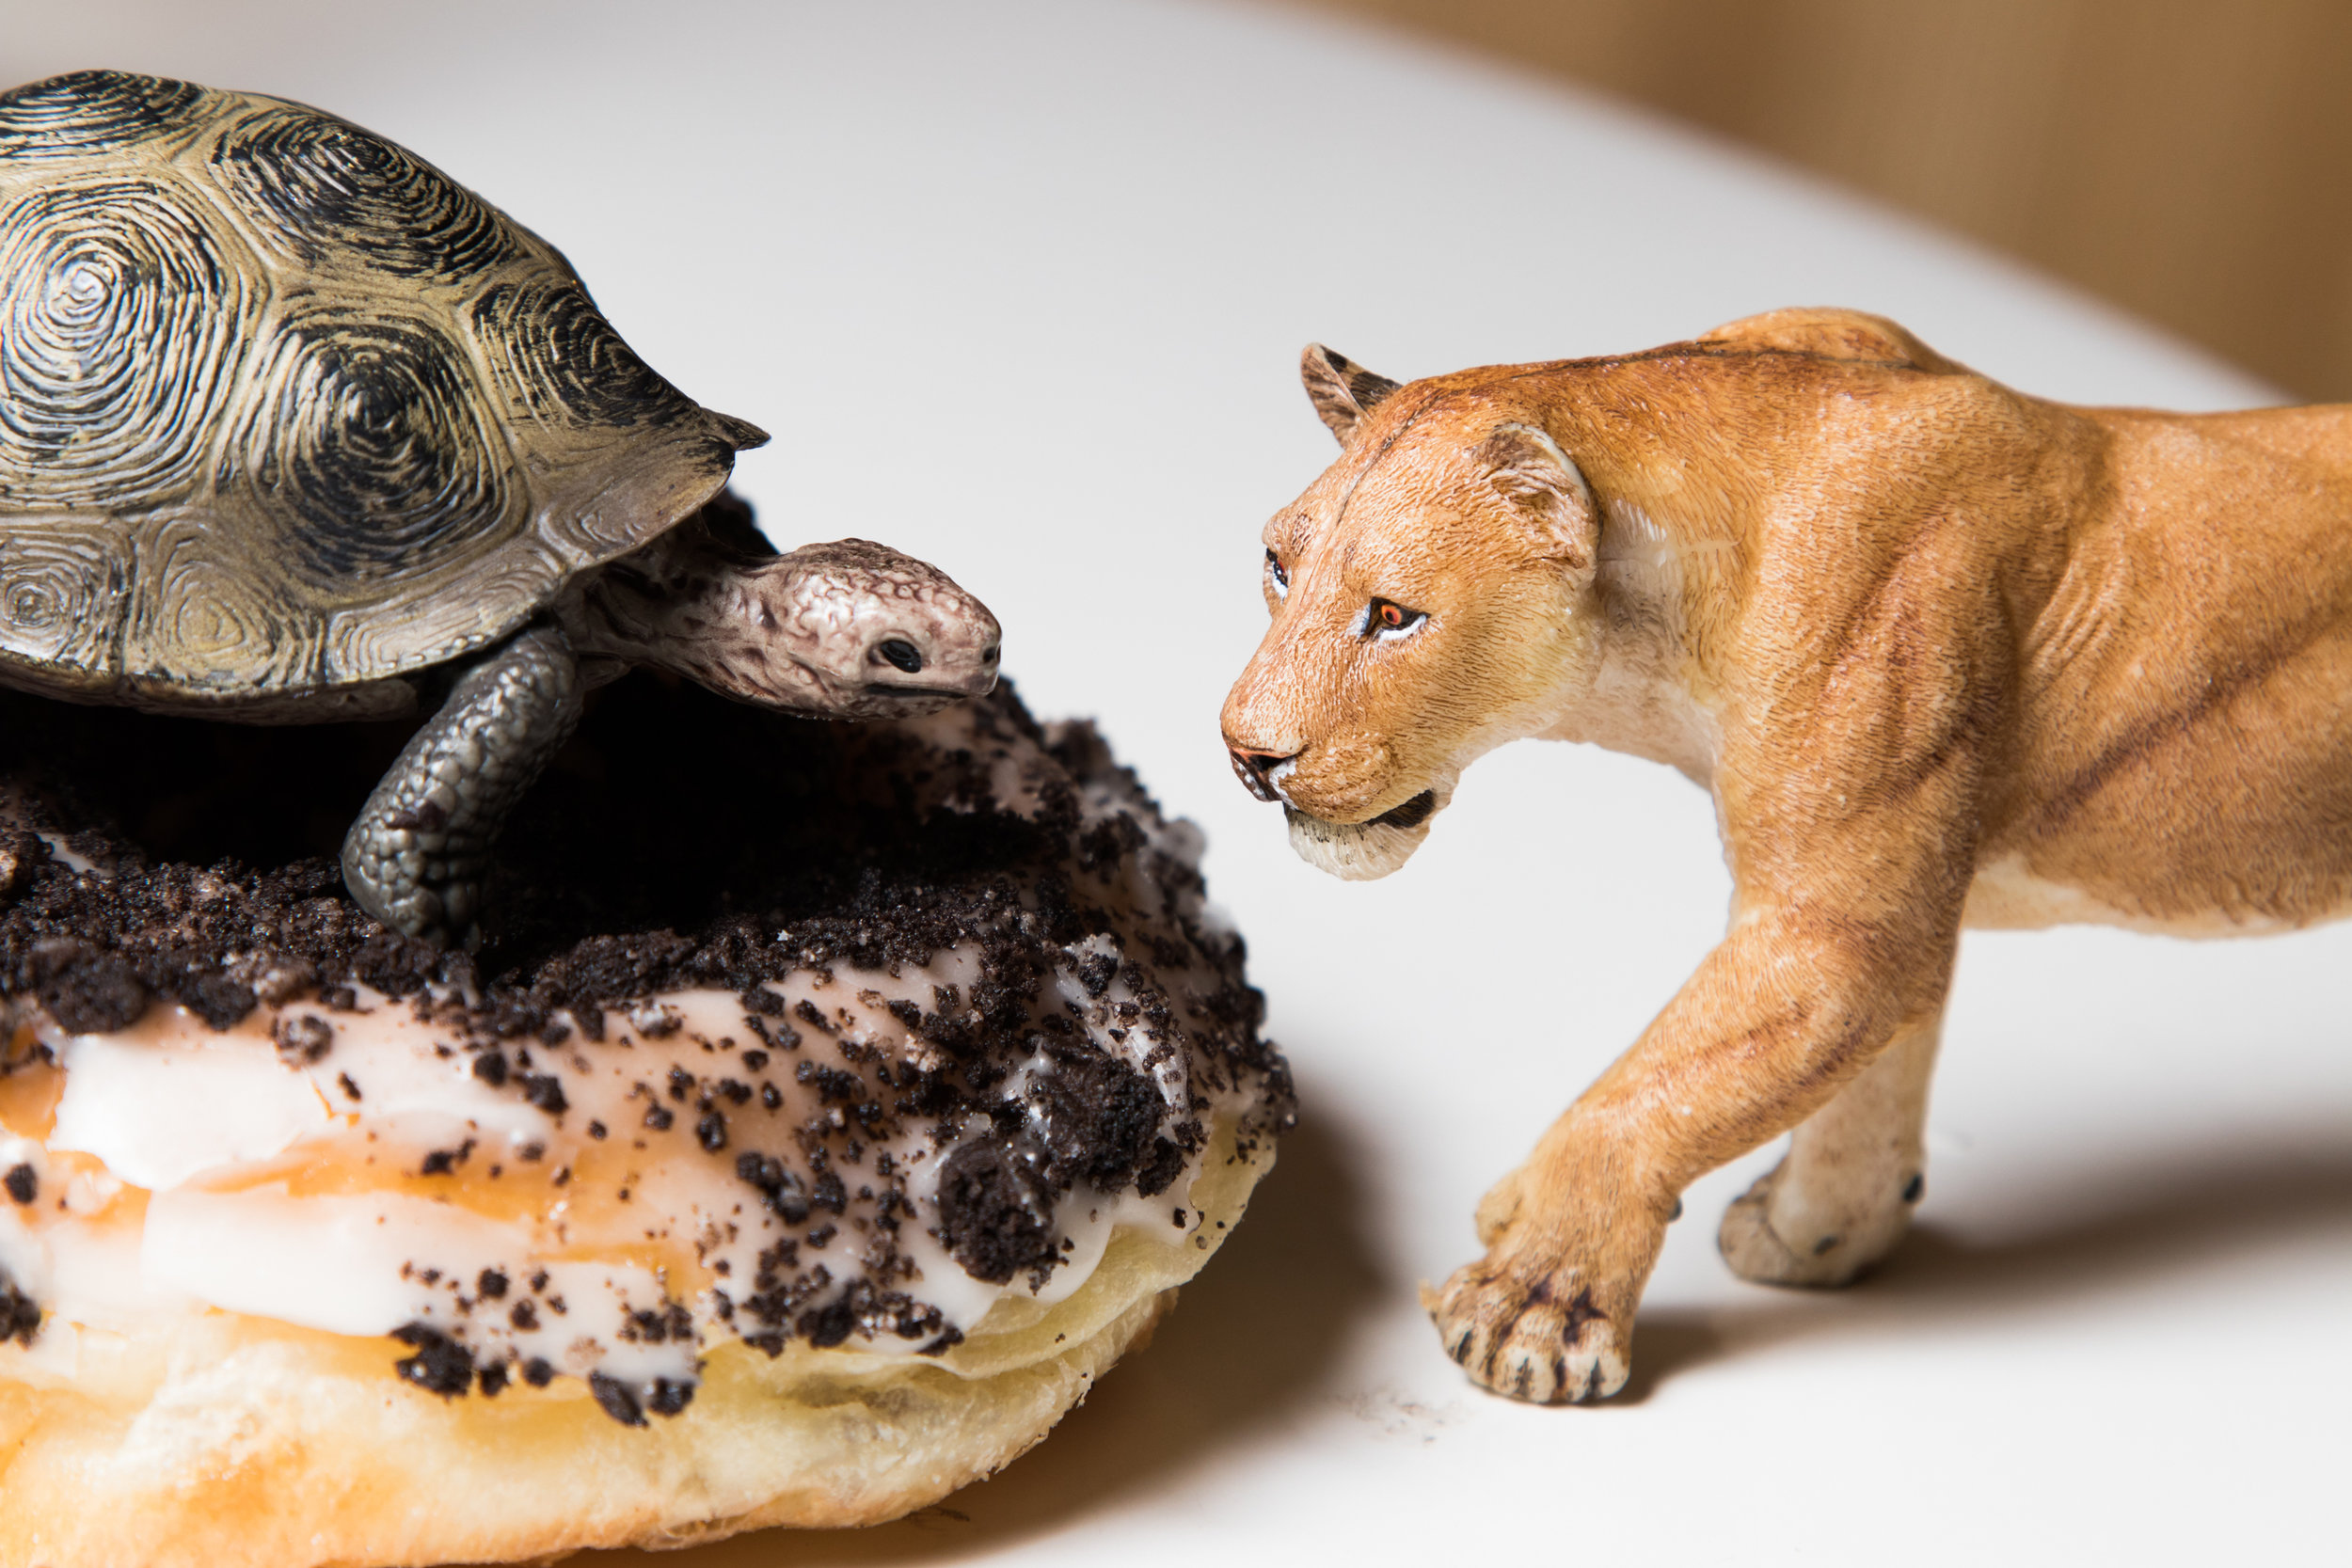 Tortoise and Lioness